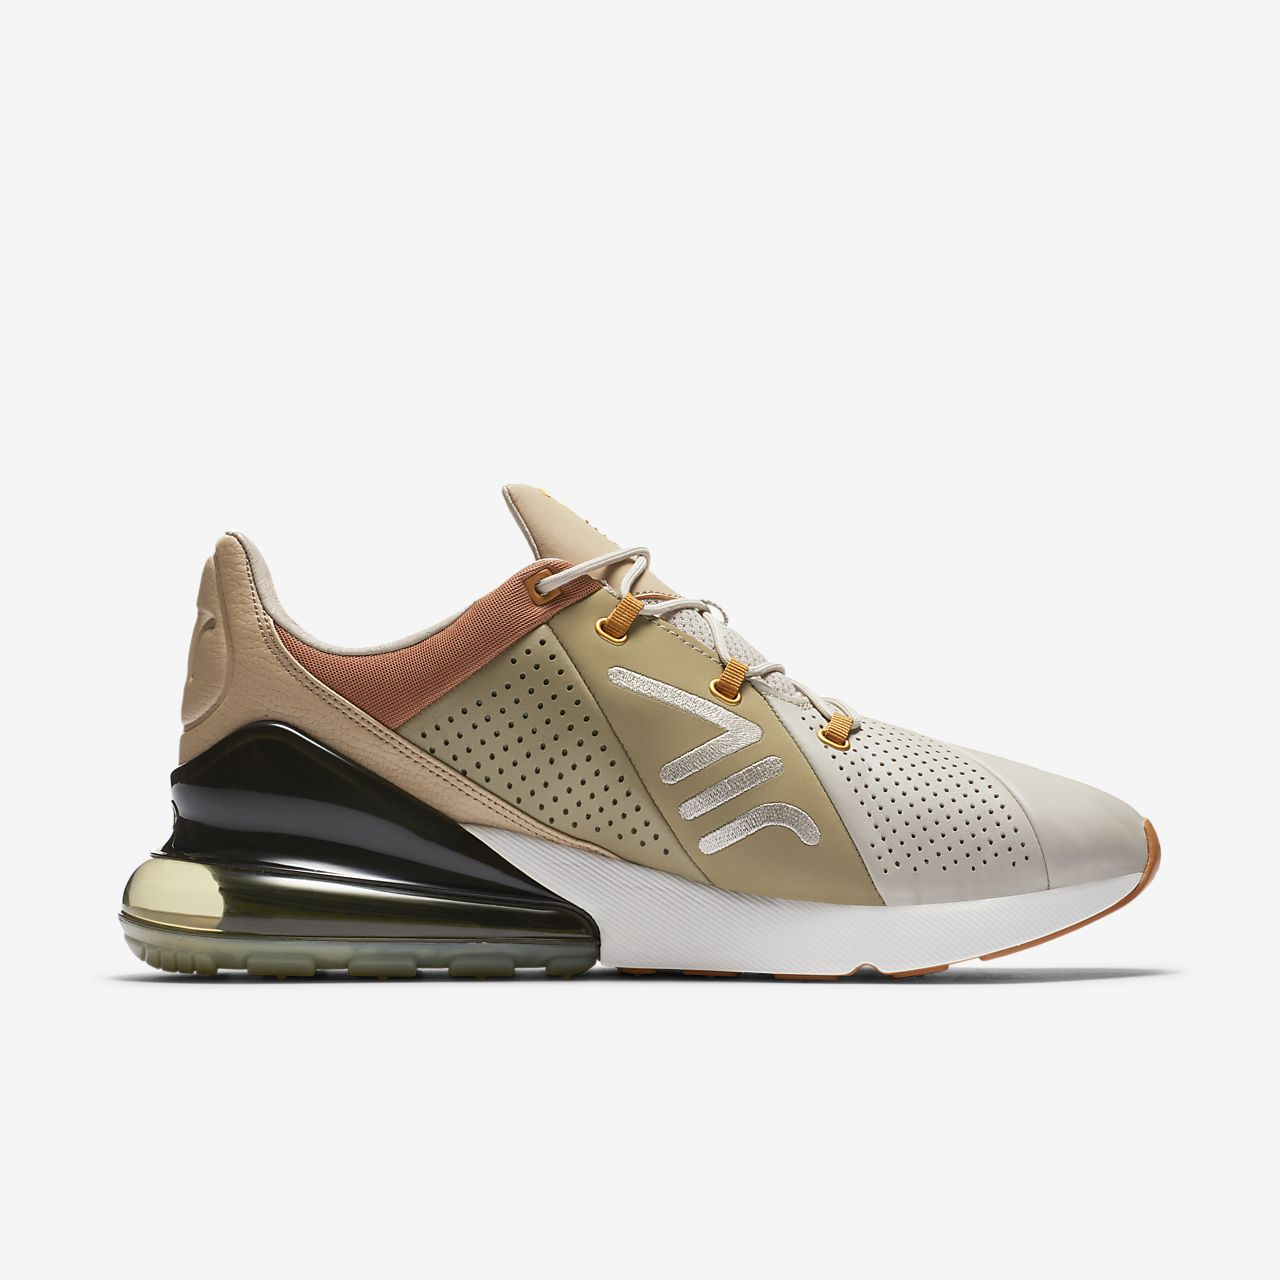 new arrivals 04ecf c2963 ... Nike Air Max 270 Premium Men s Shoe